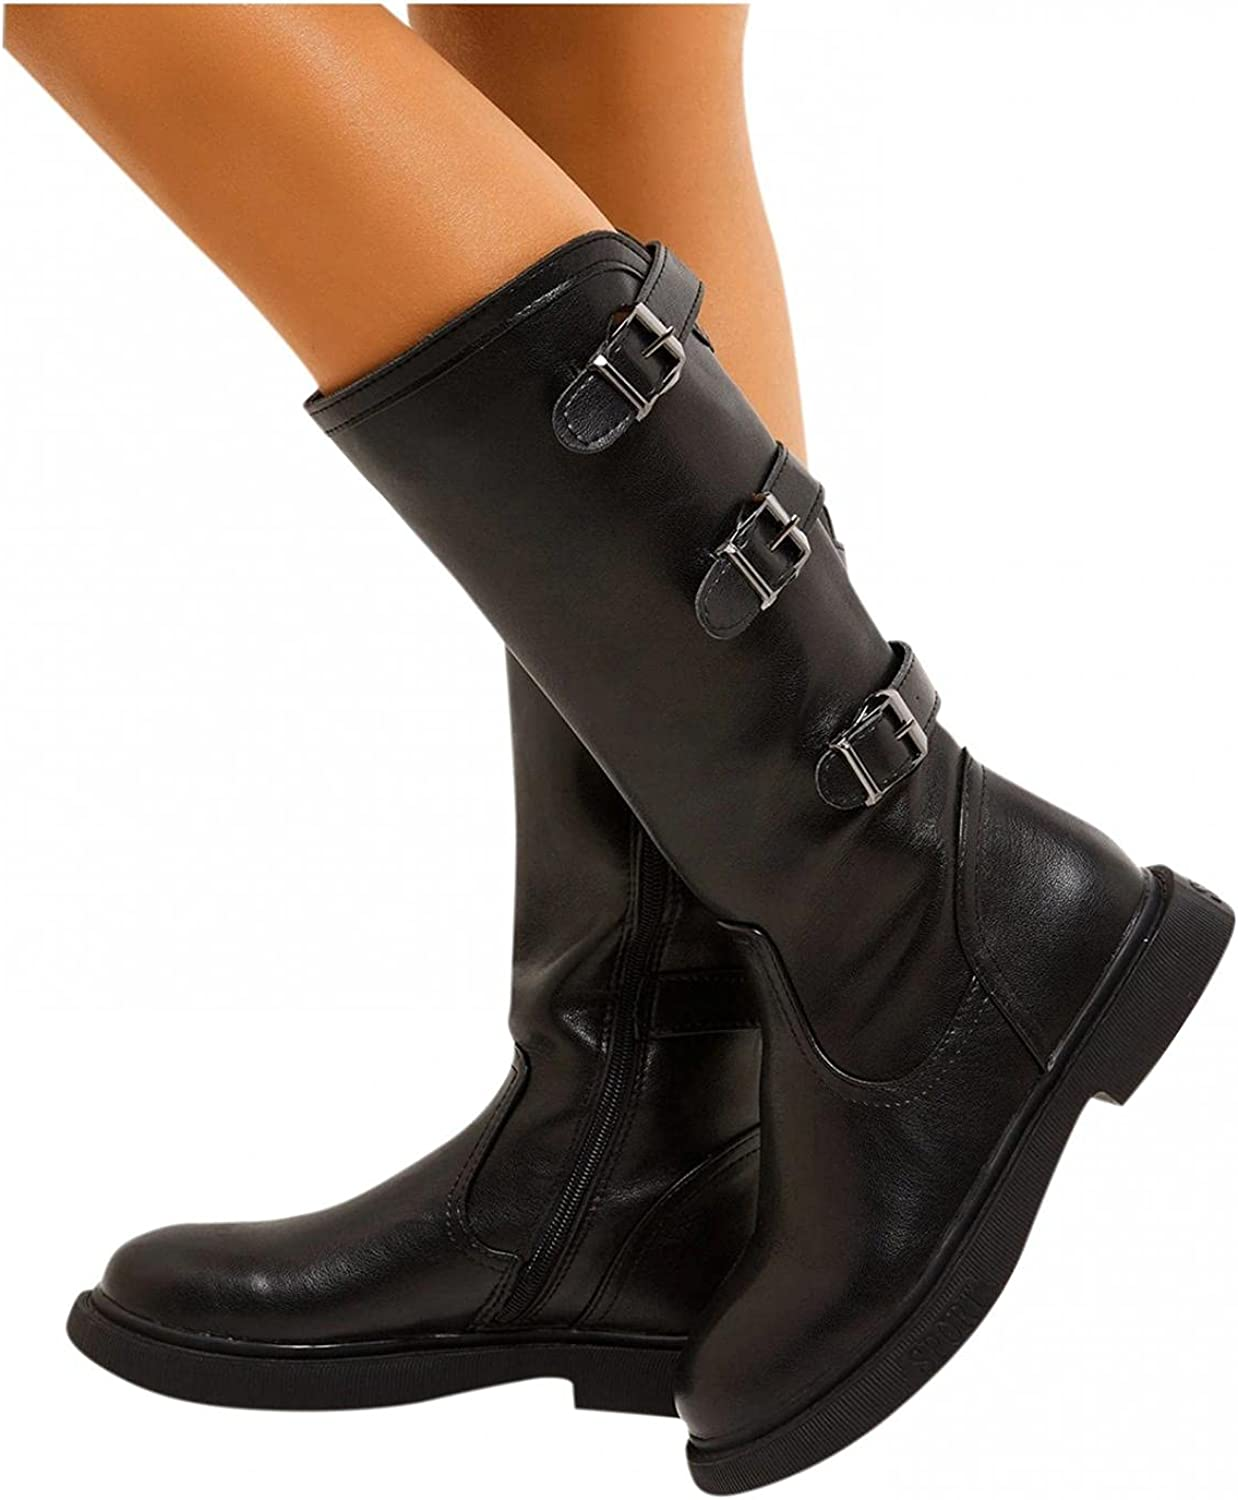 Cowgirl Boots for Women Buckle Mid Calf Boots Low Block Heels Platform Boots Slip On Rider Cowboy Boots Casual Shoes